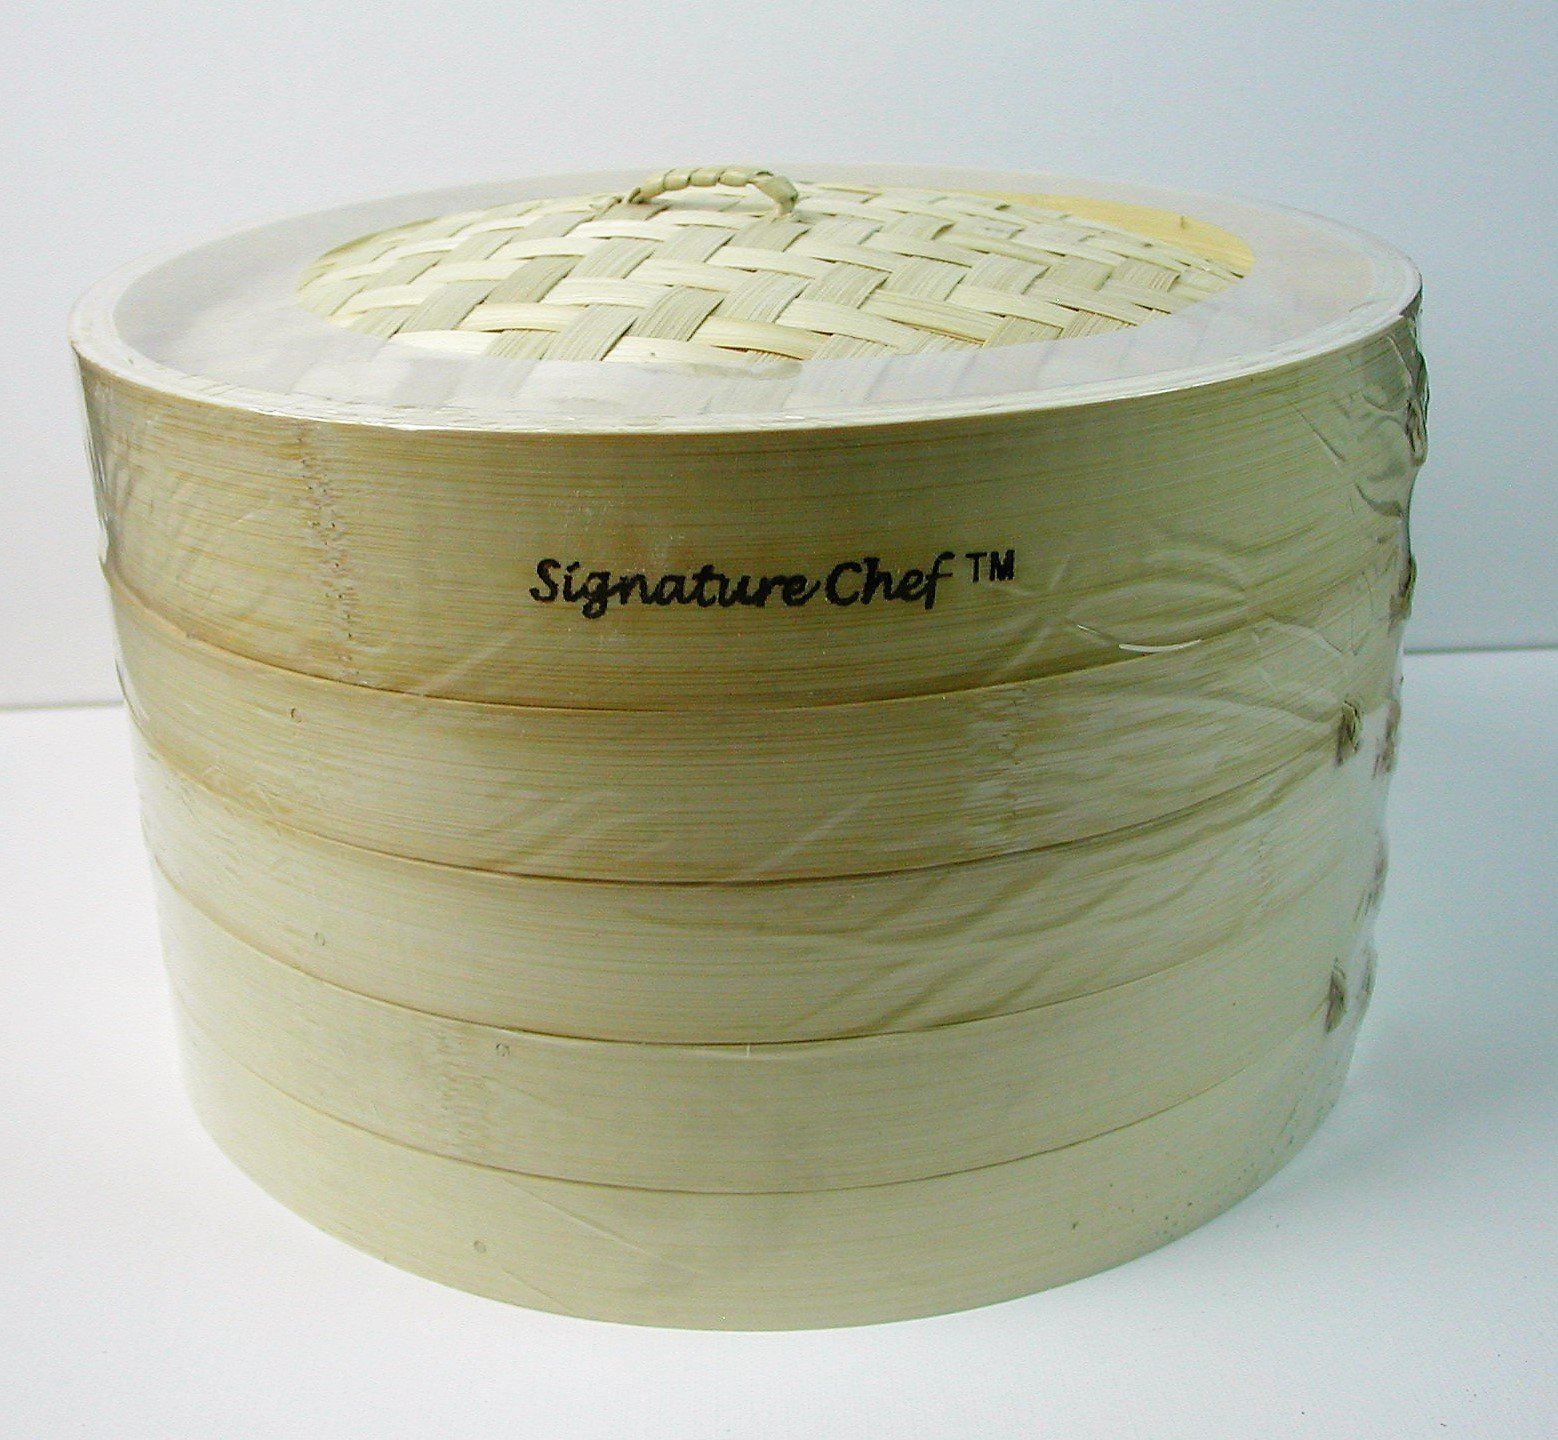 Signature Chef Bamboo Steamer, 10 inch, 2 Tier with Lid by Signature Chef (Image #3)